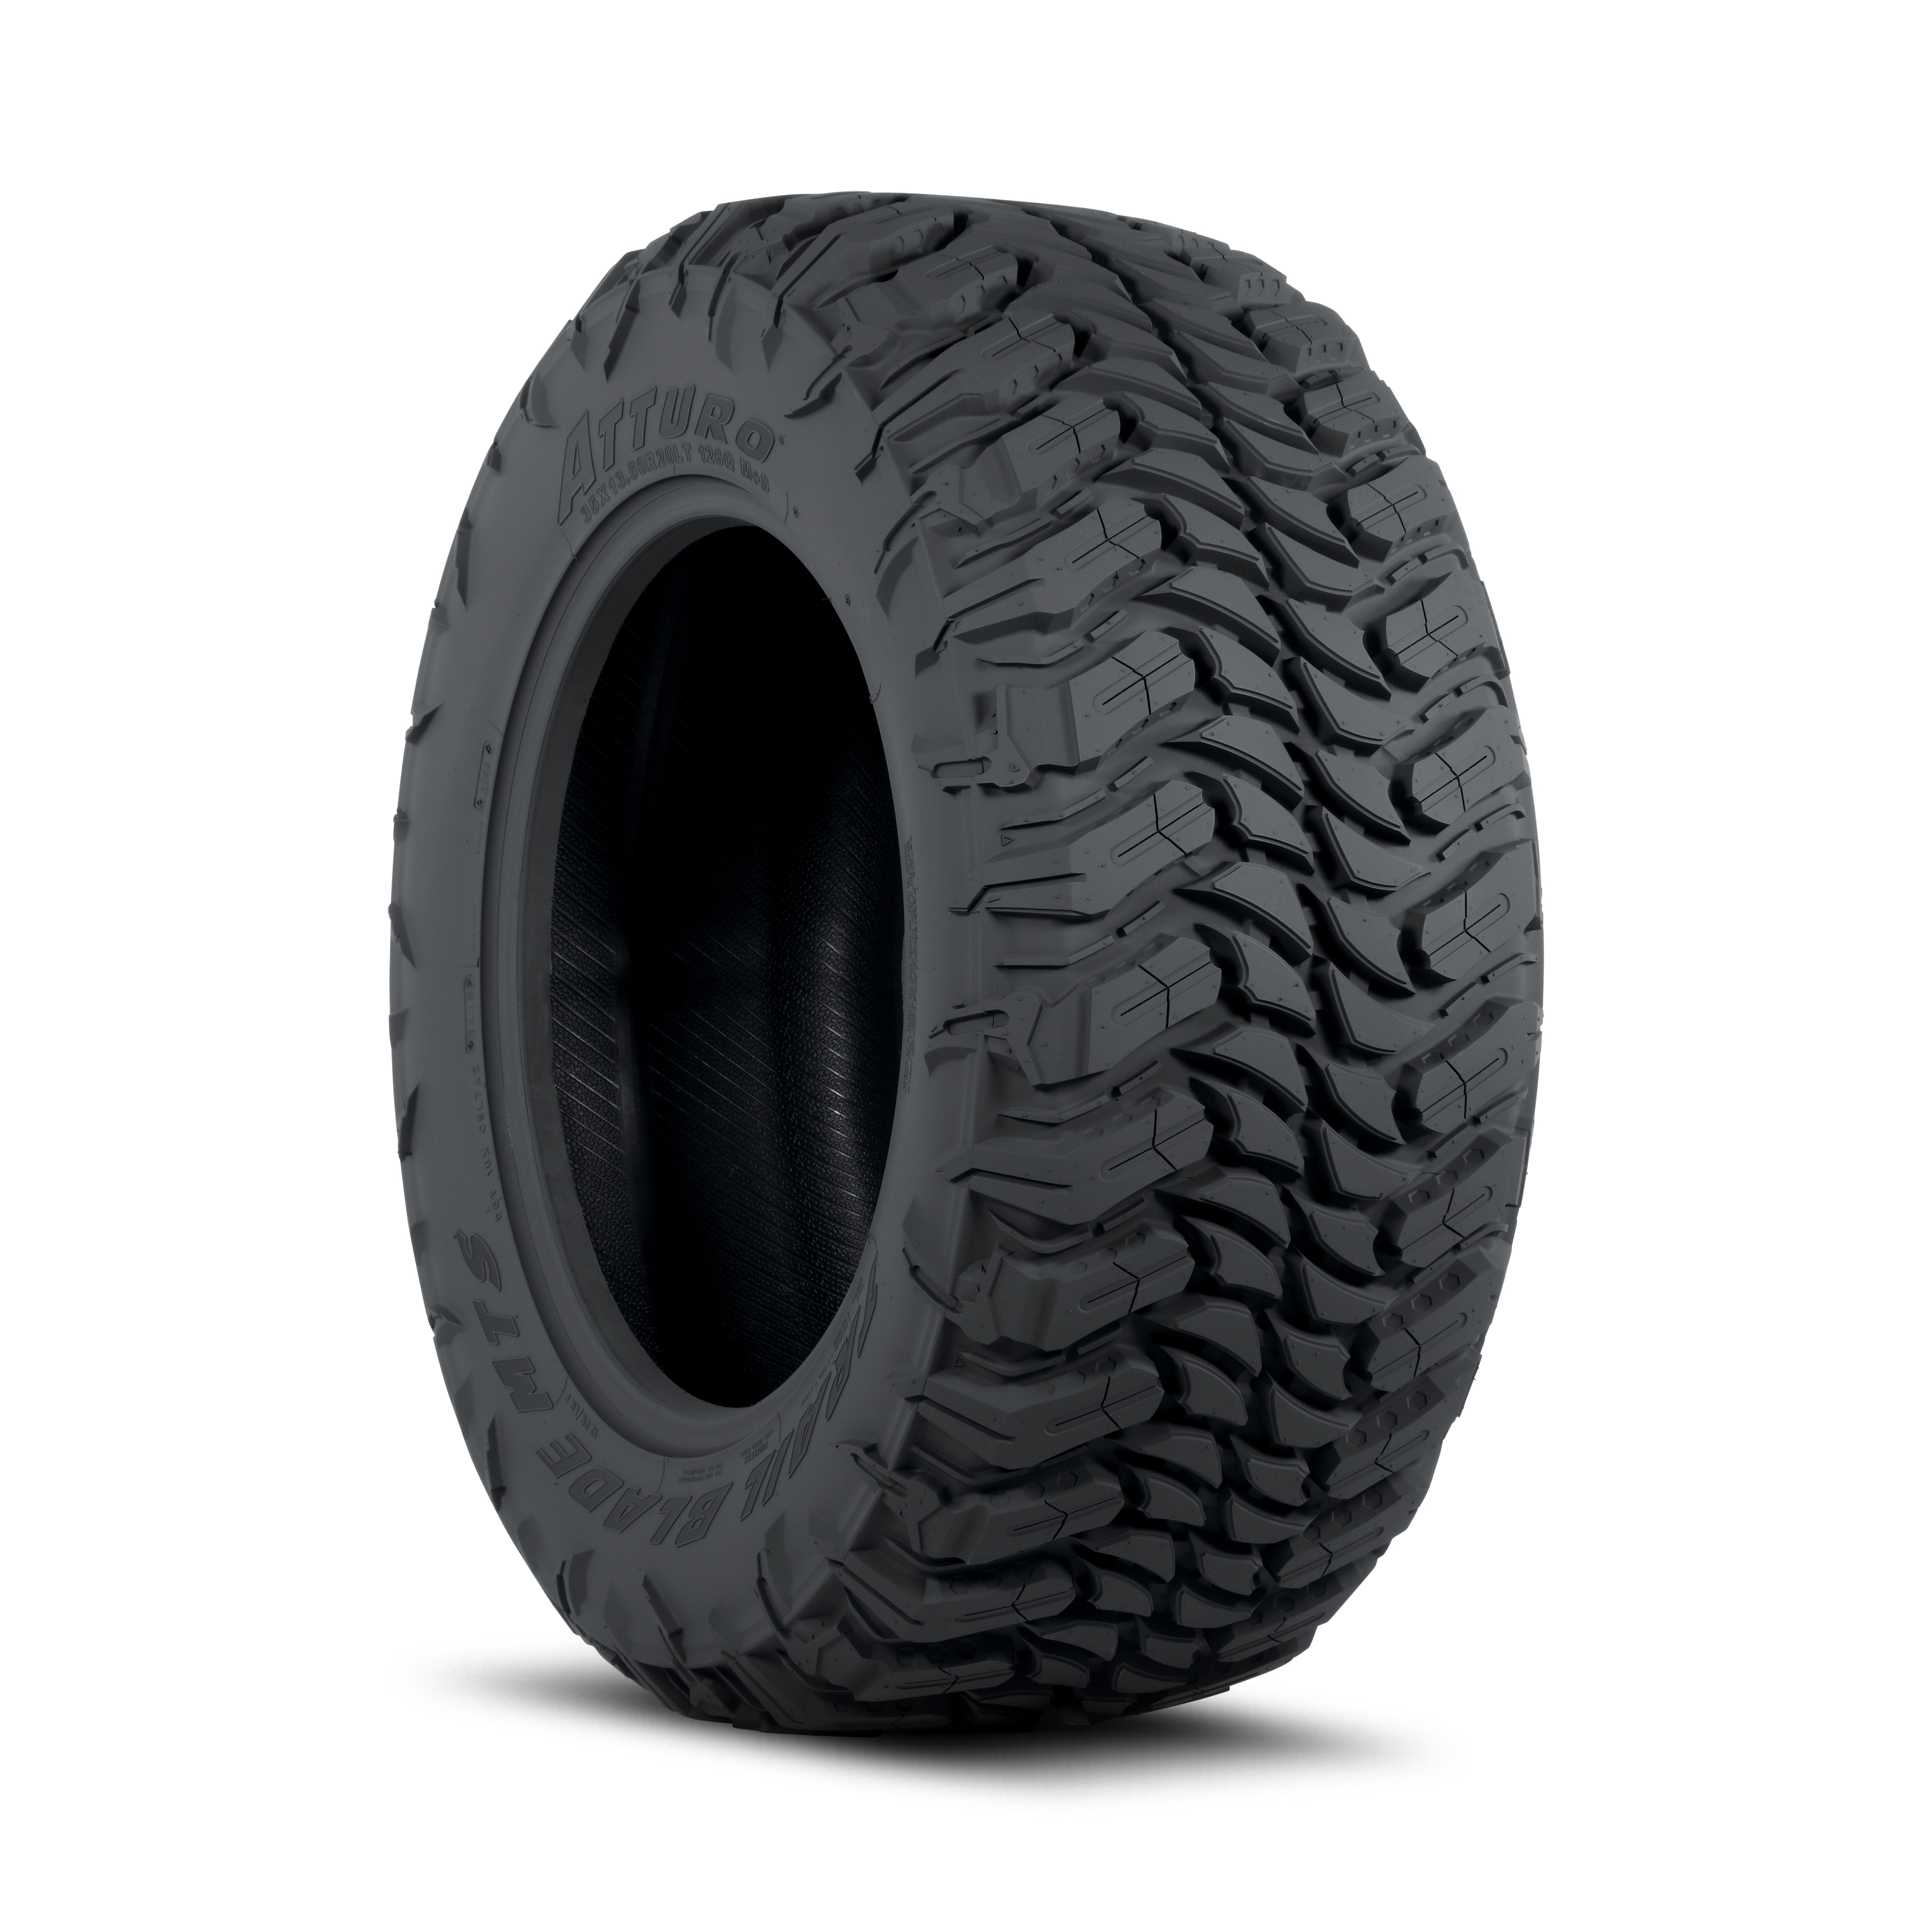 Atturo Unveils a New M/T Tire — the Trail Blade MTS